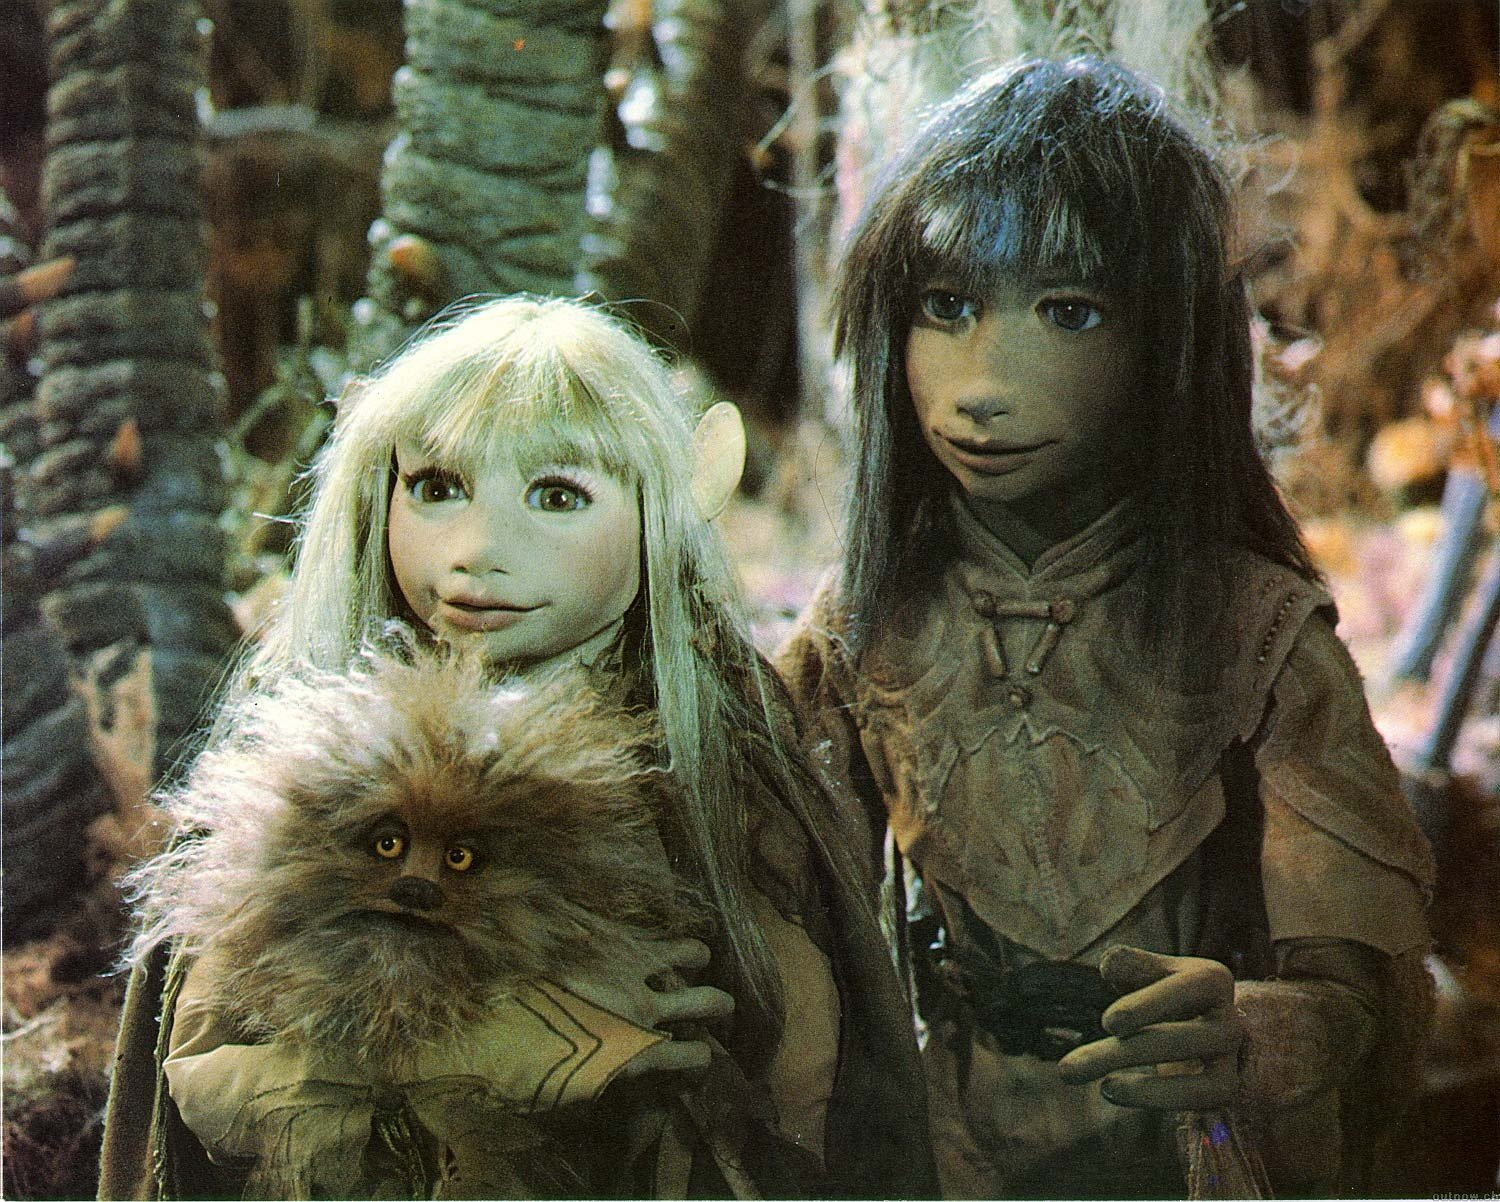 Kira, Jen and Fizzgig The Dark Crystal picture image